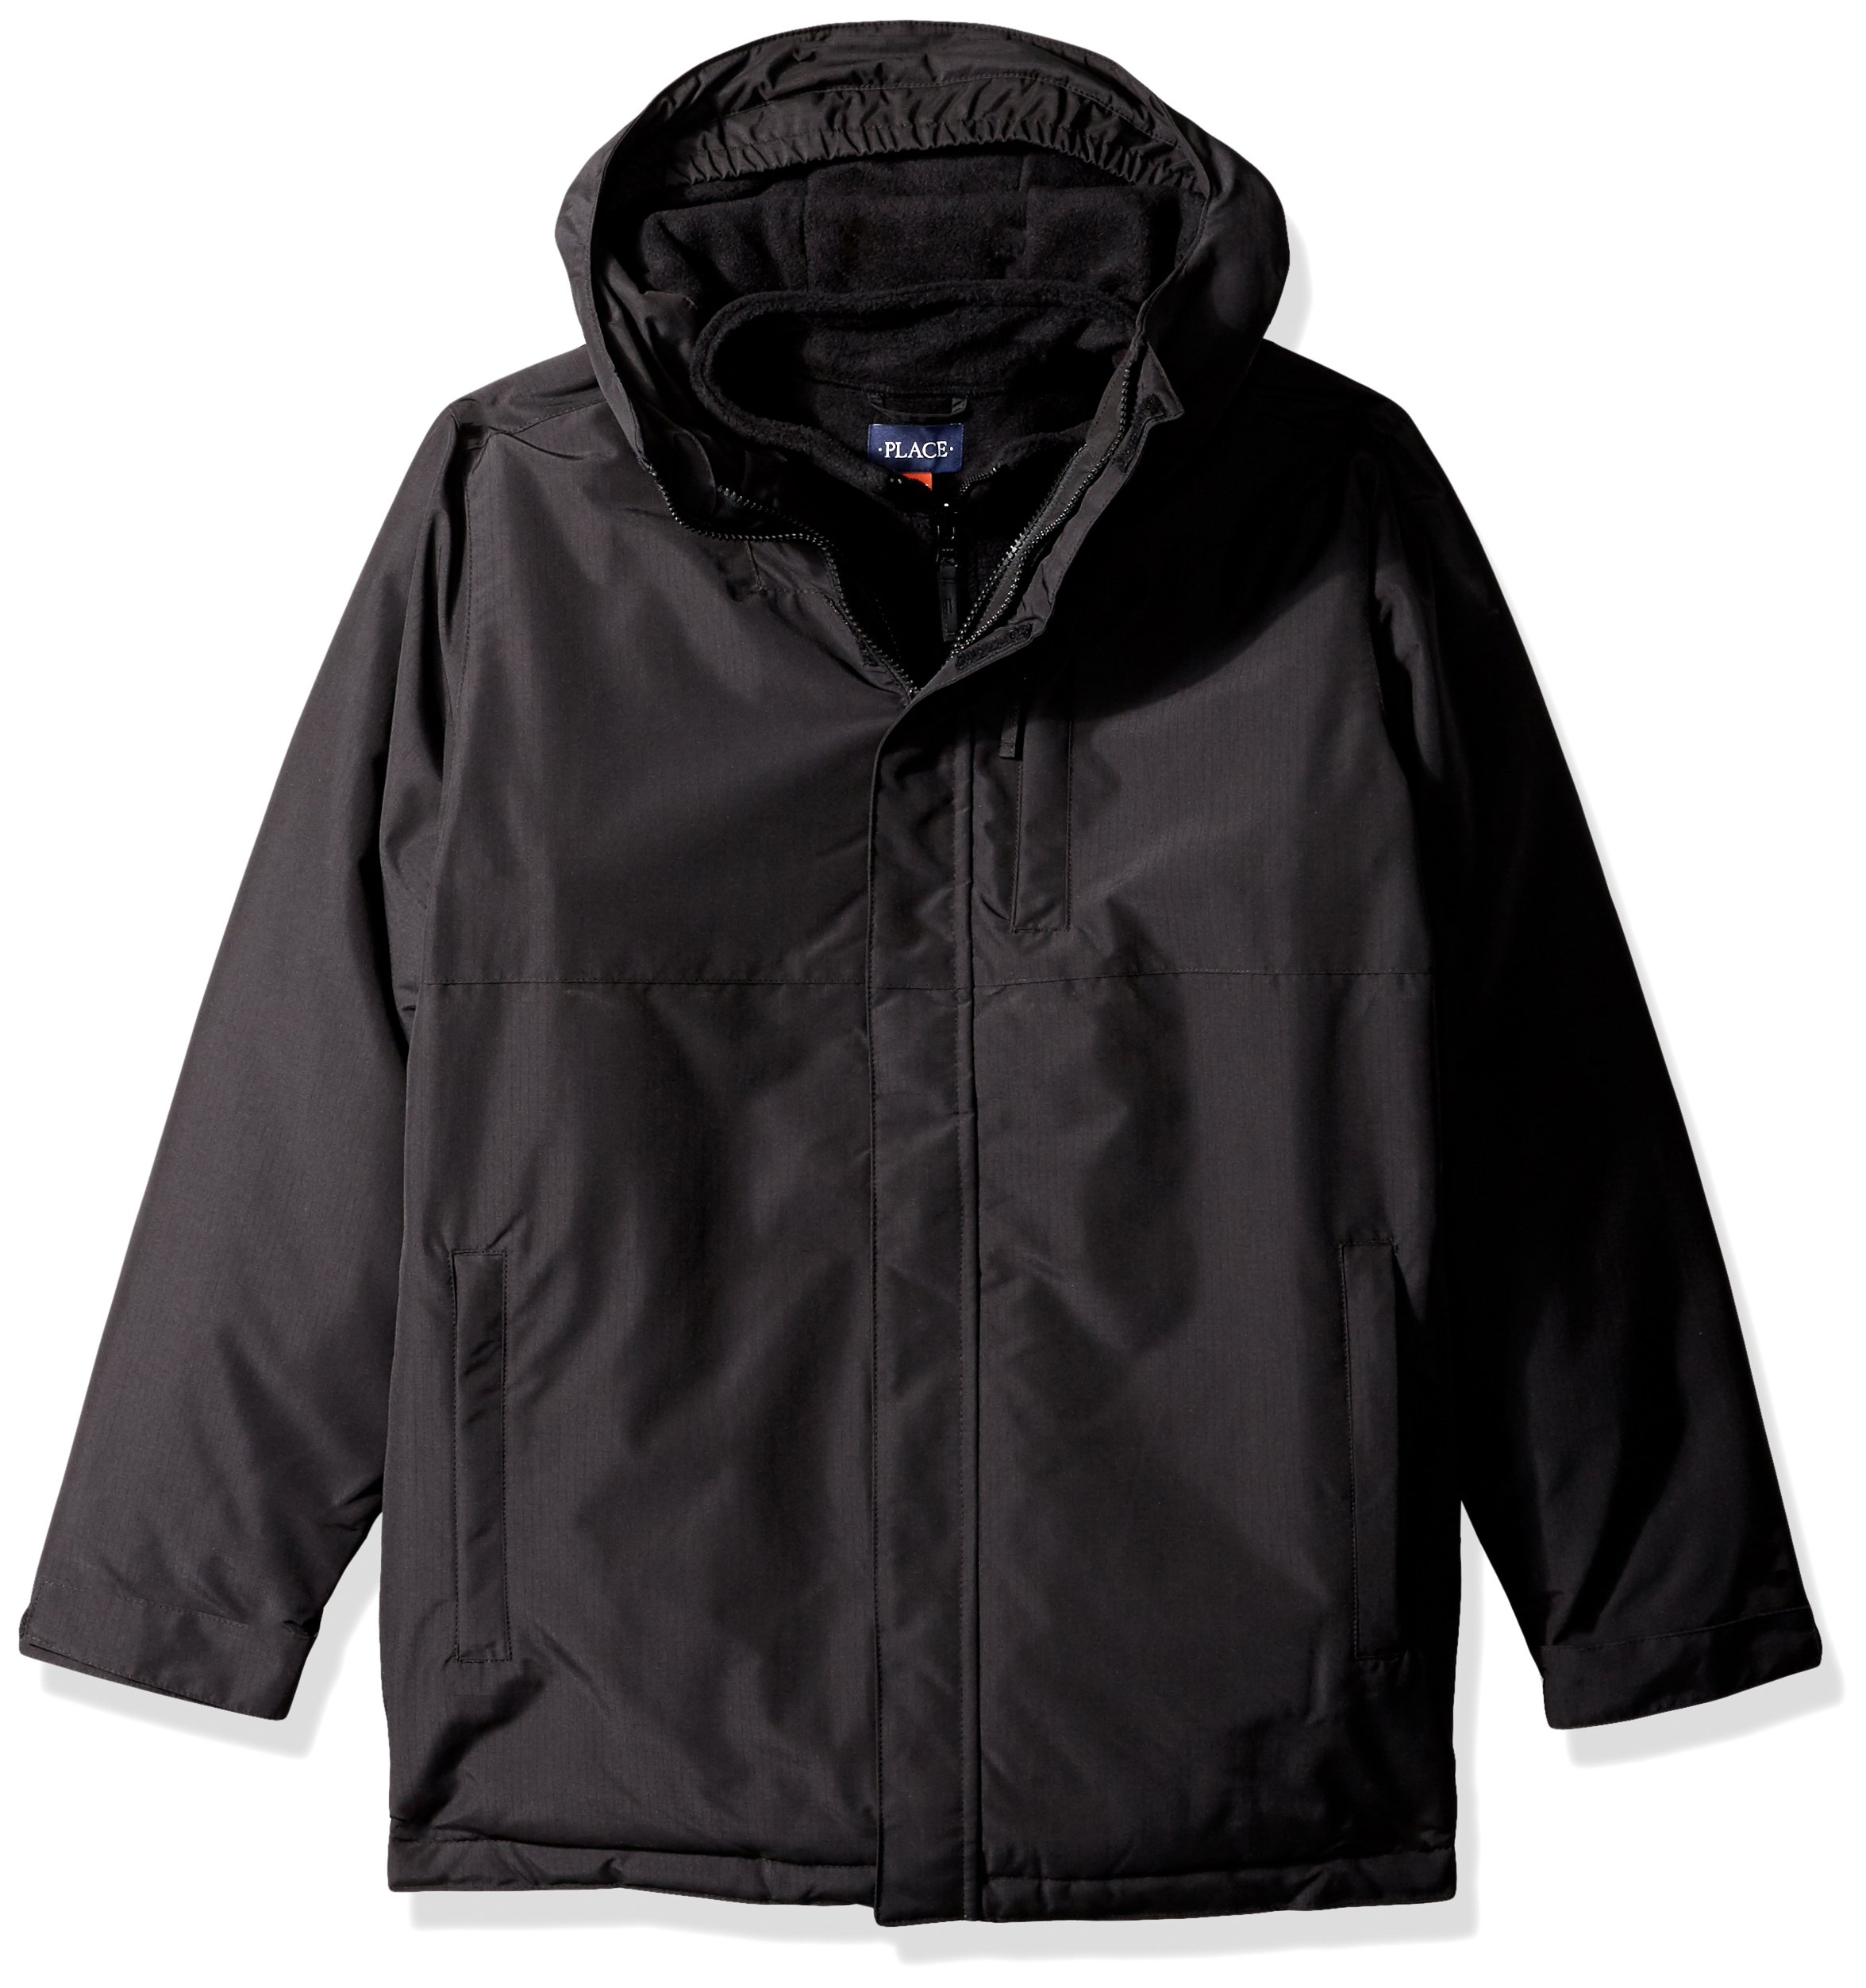 The Children's Place Big Girls' 3-in-1 Jacket, Black, L (10/12)